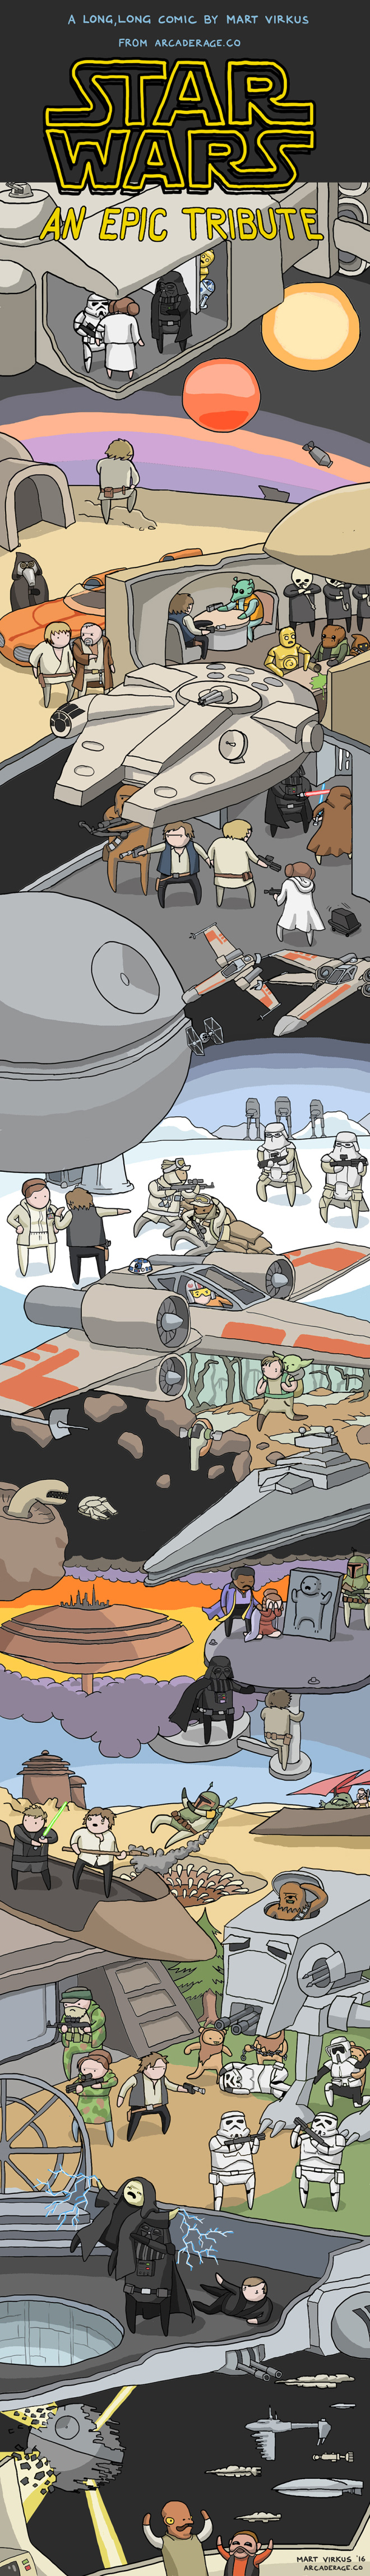 The Entire Star Wars Original Trilogy in One Big Comic